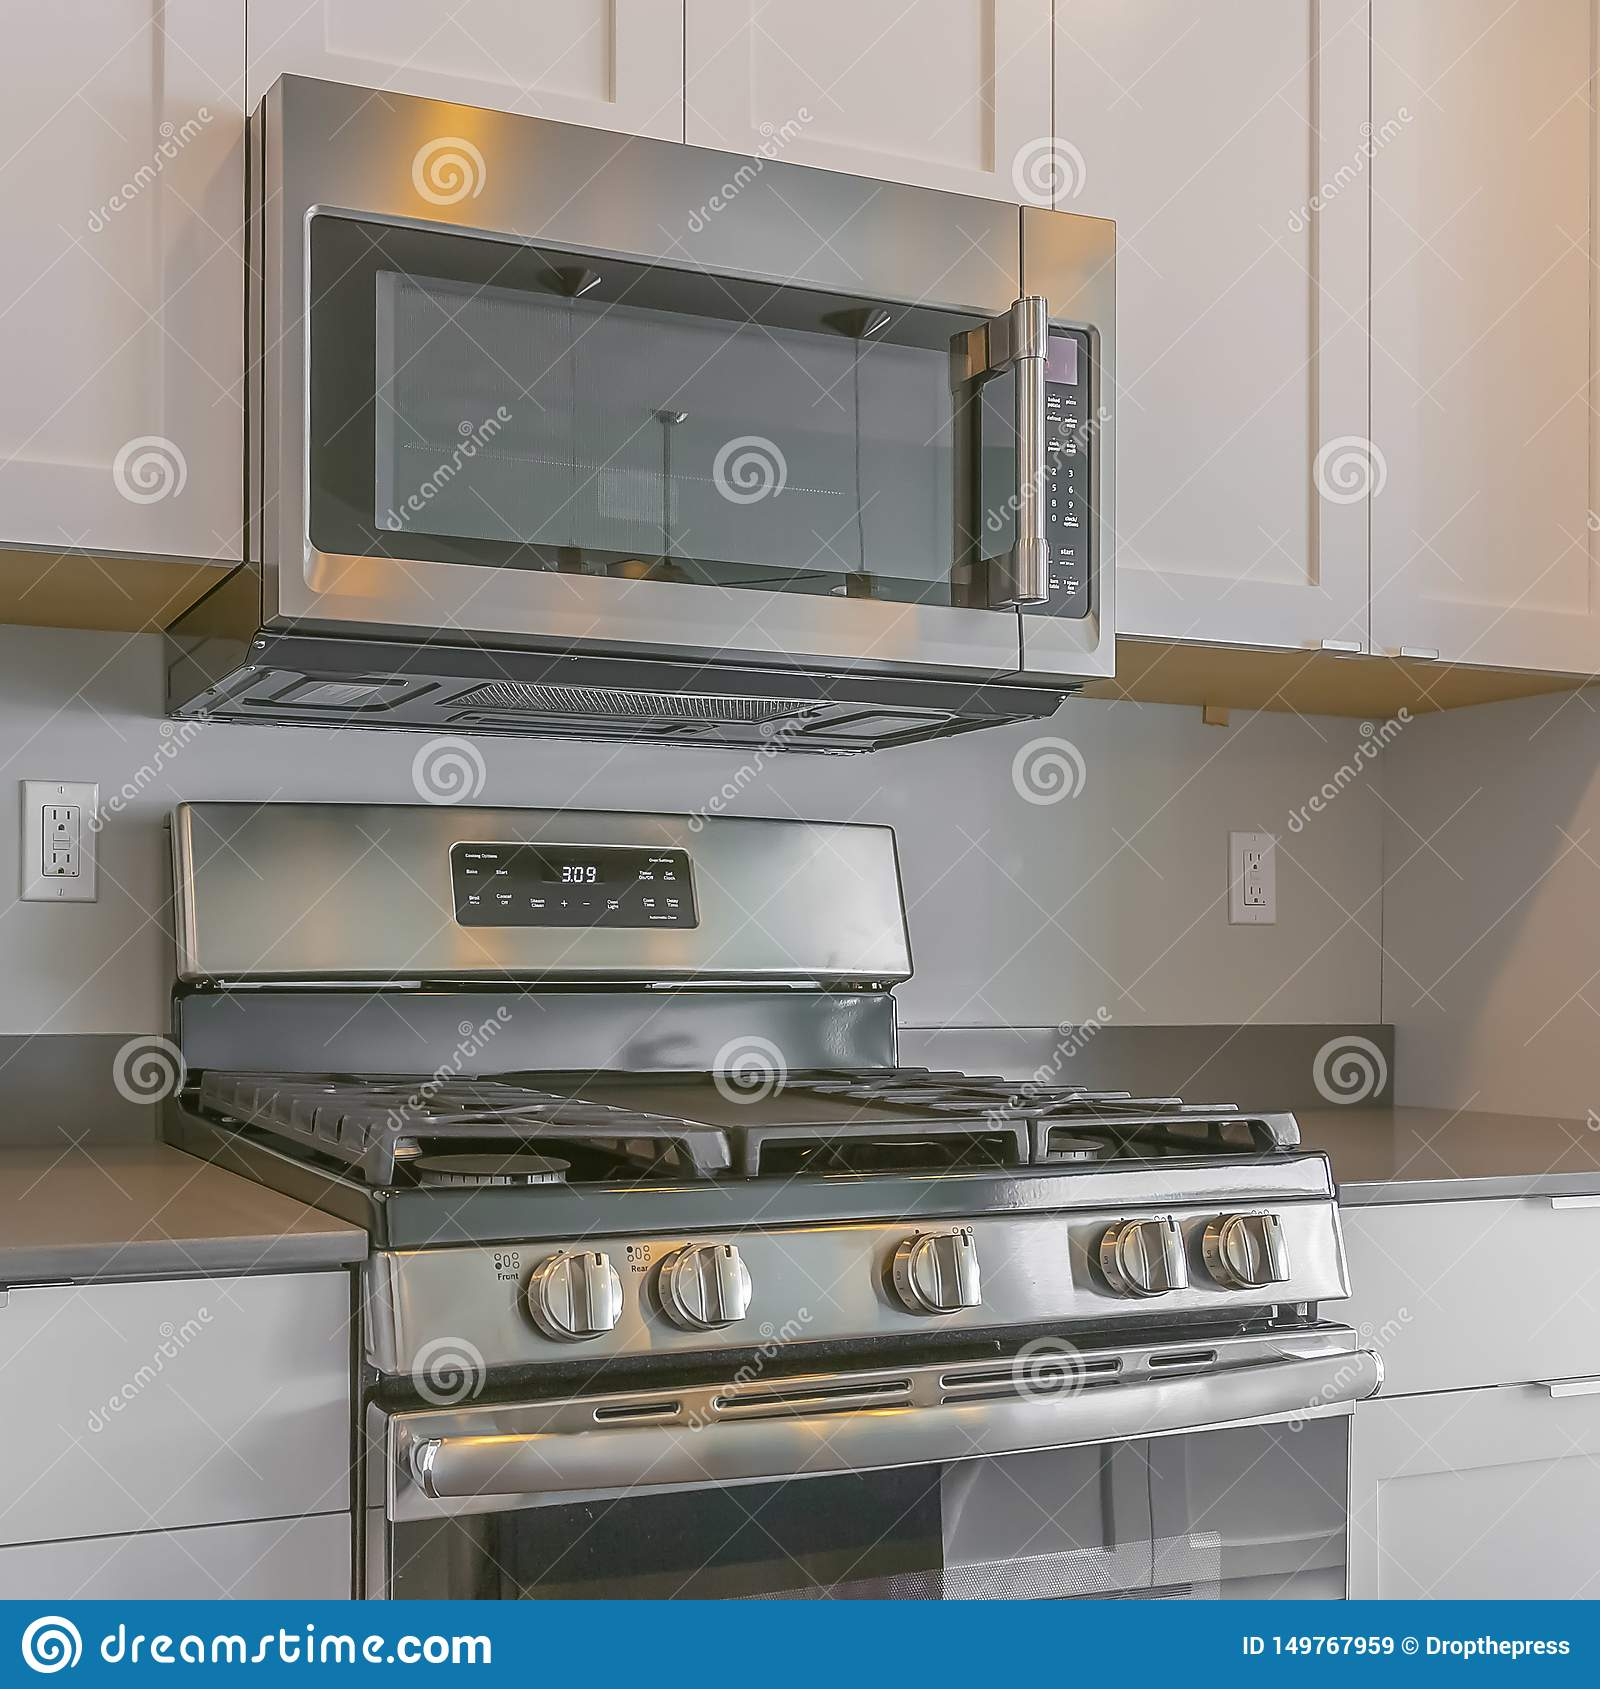 https www dreamstime com frame square cooking range wall mounted microwave inside modern kitchen white wooden cabinets built s light gray image149767959